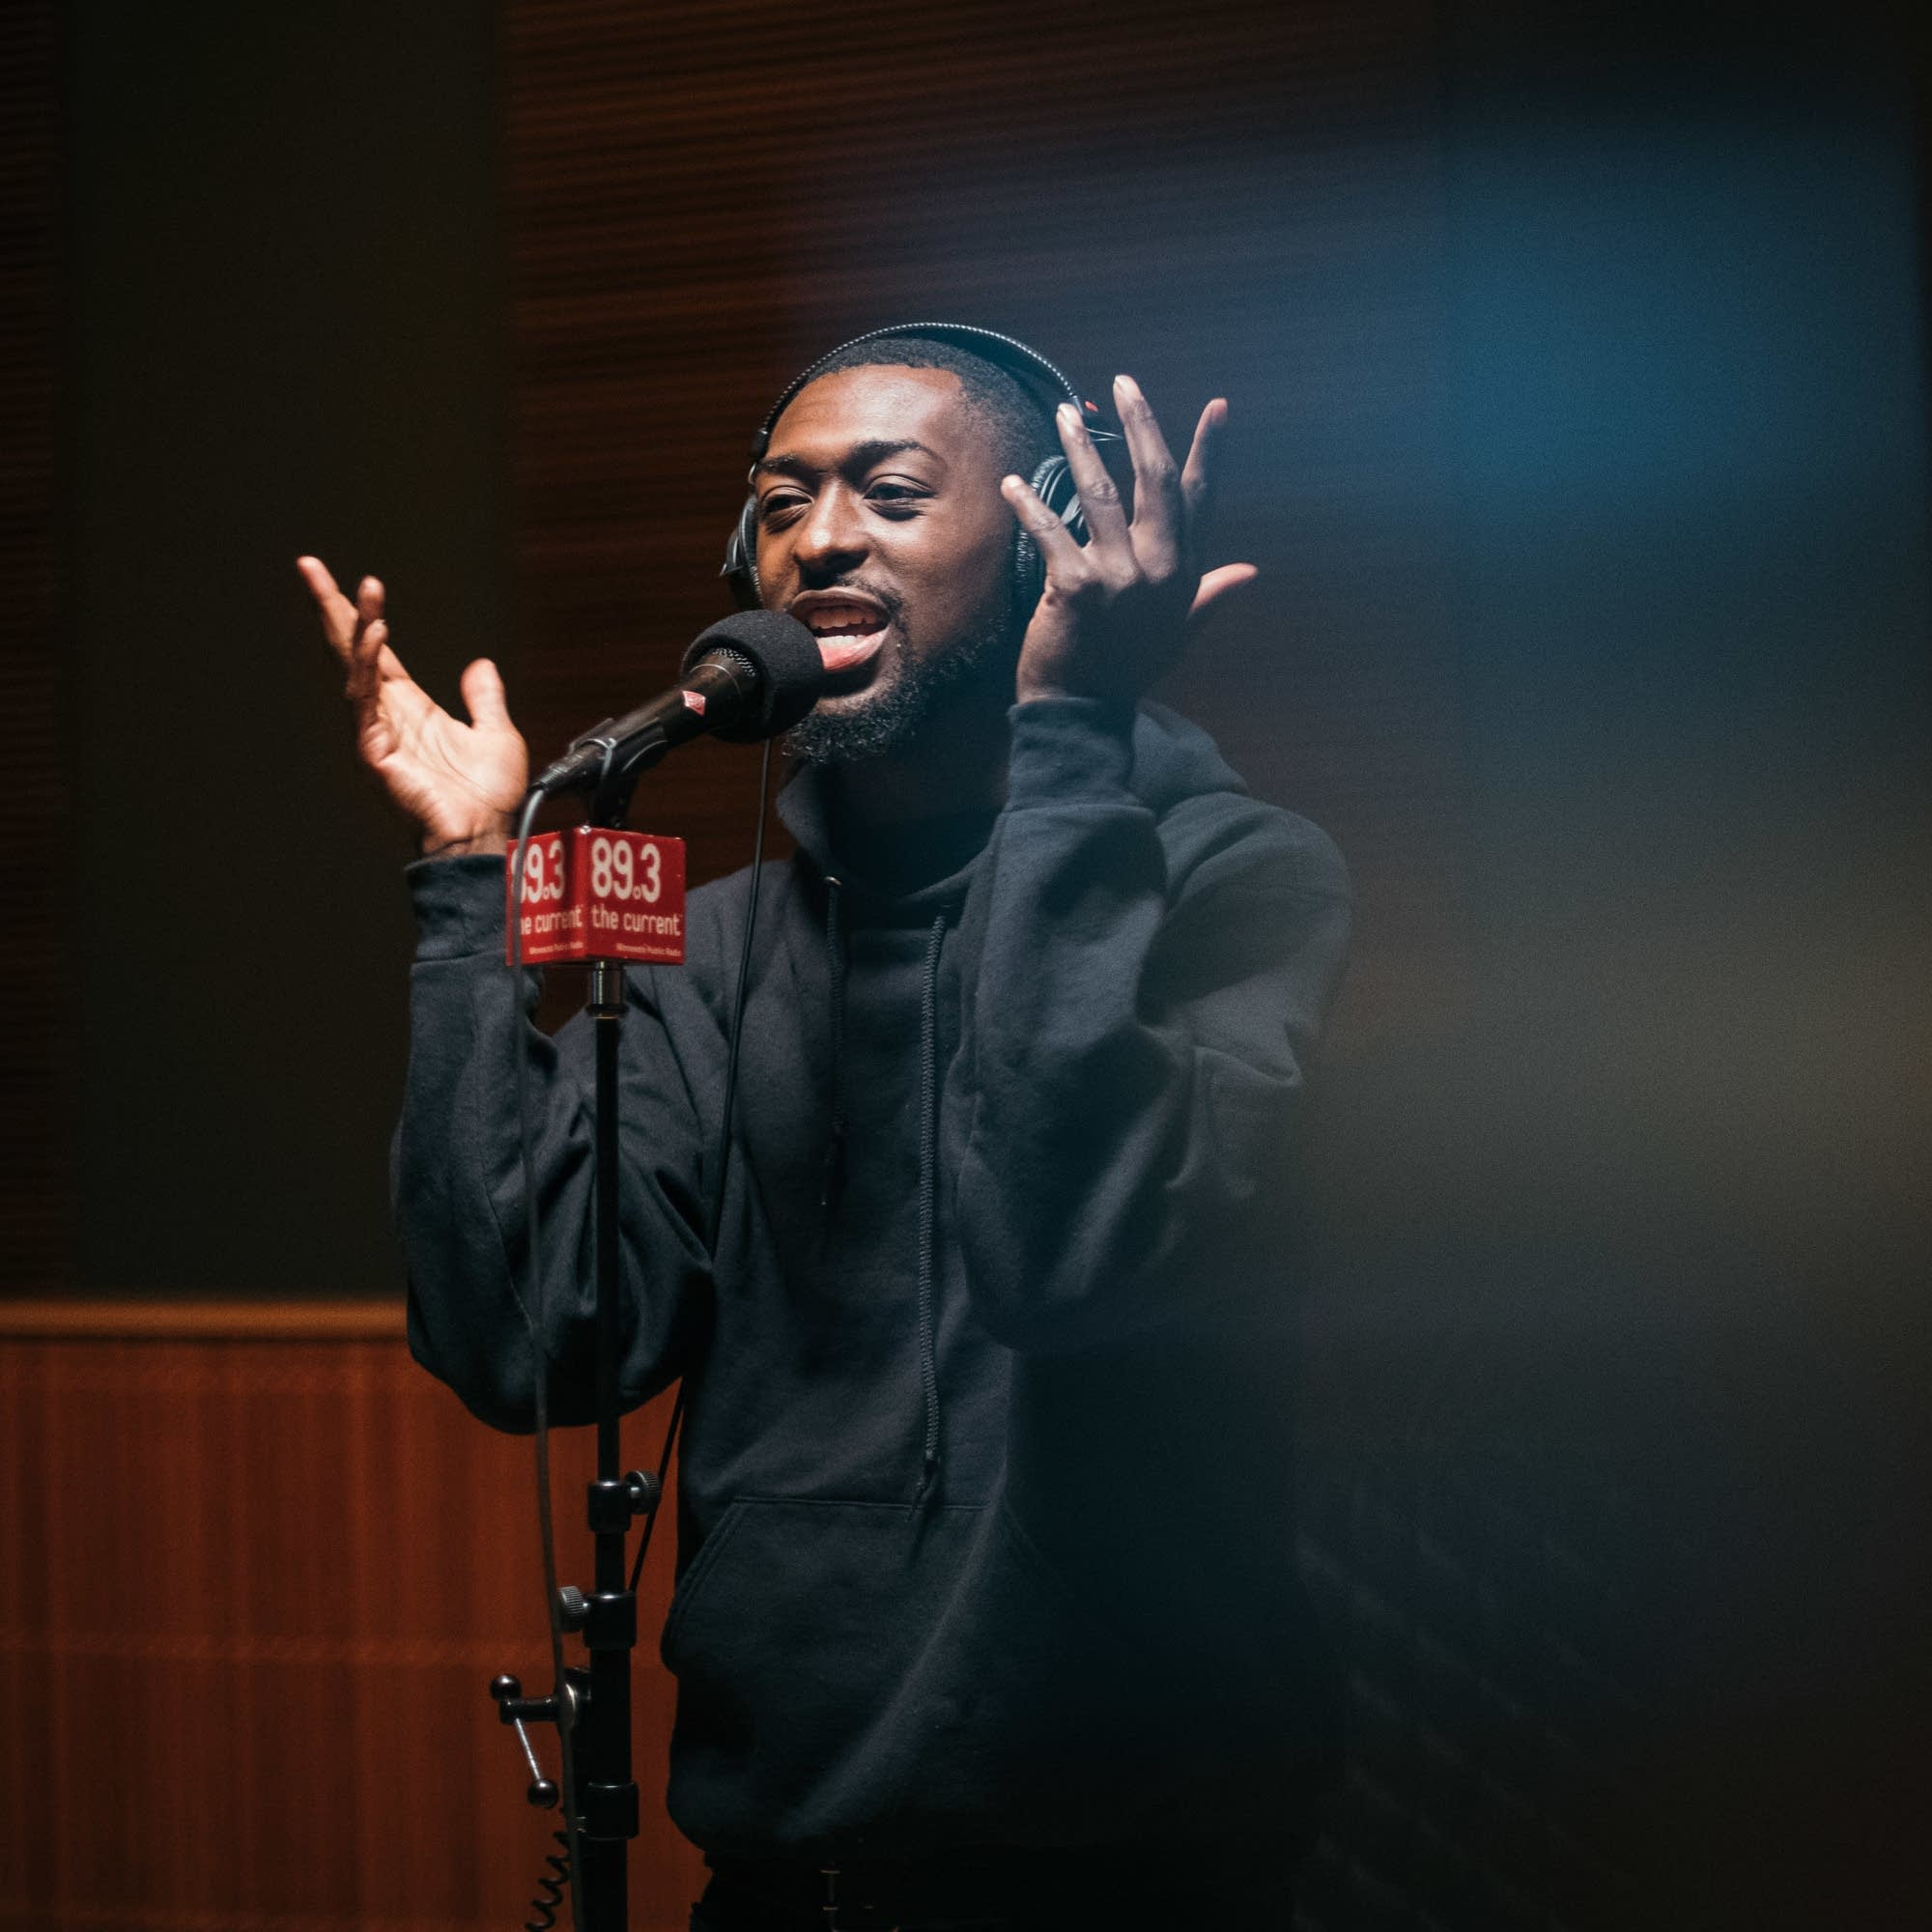 Dwynell Roland performs in The Current's studio